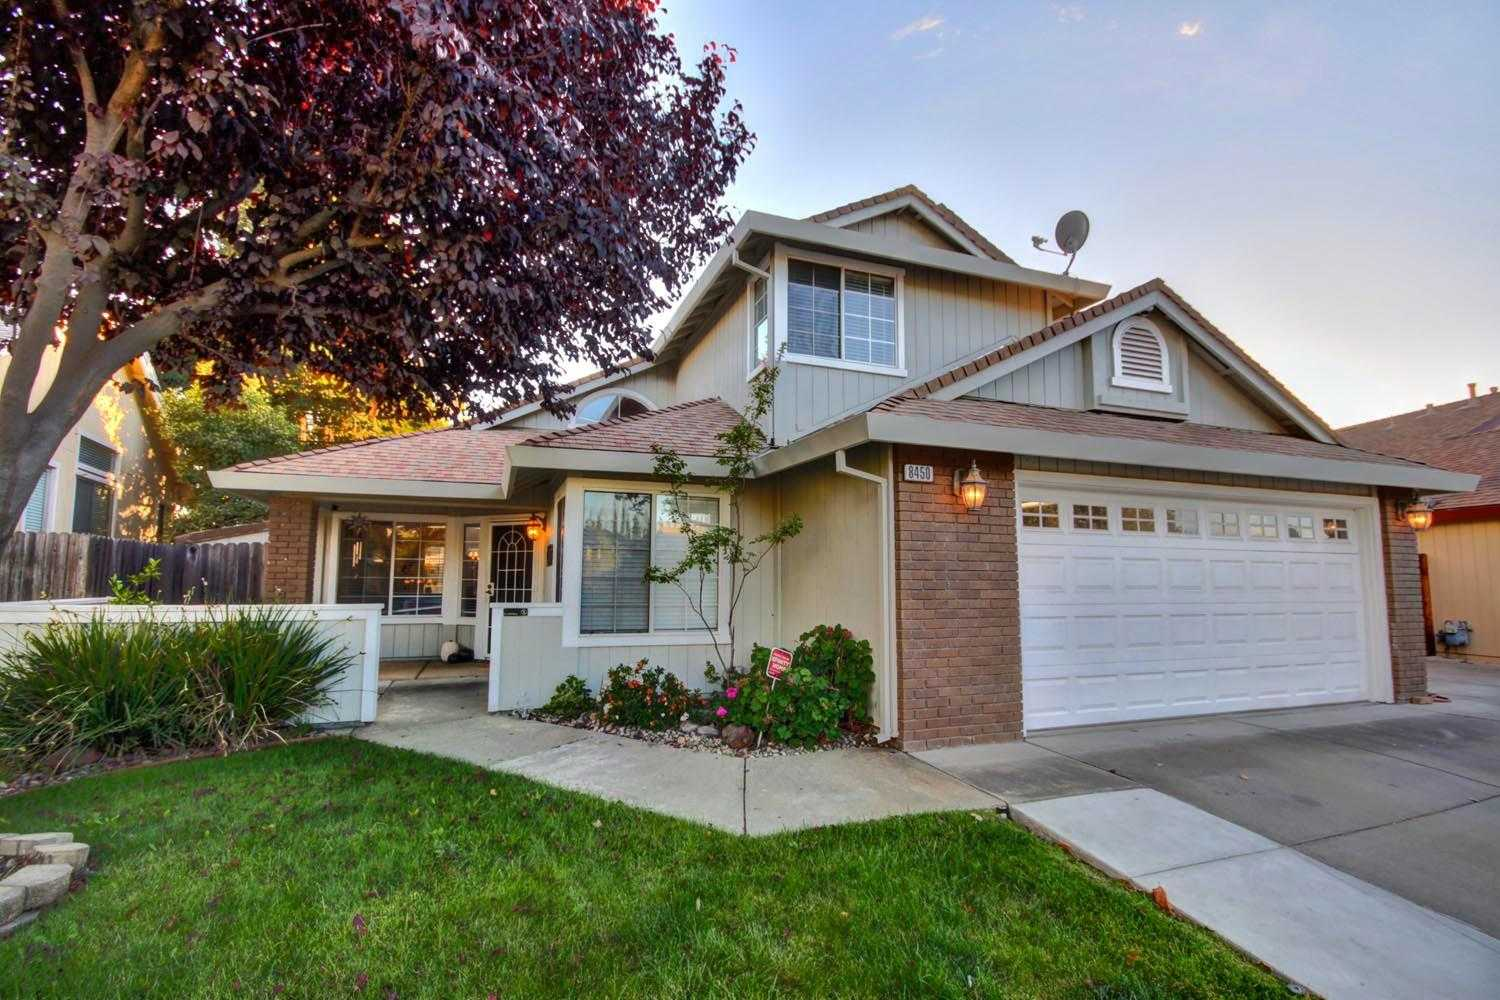 $395,000 - 4Br/3Ba -  for Sale in Sacramento